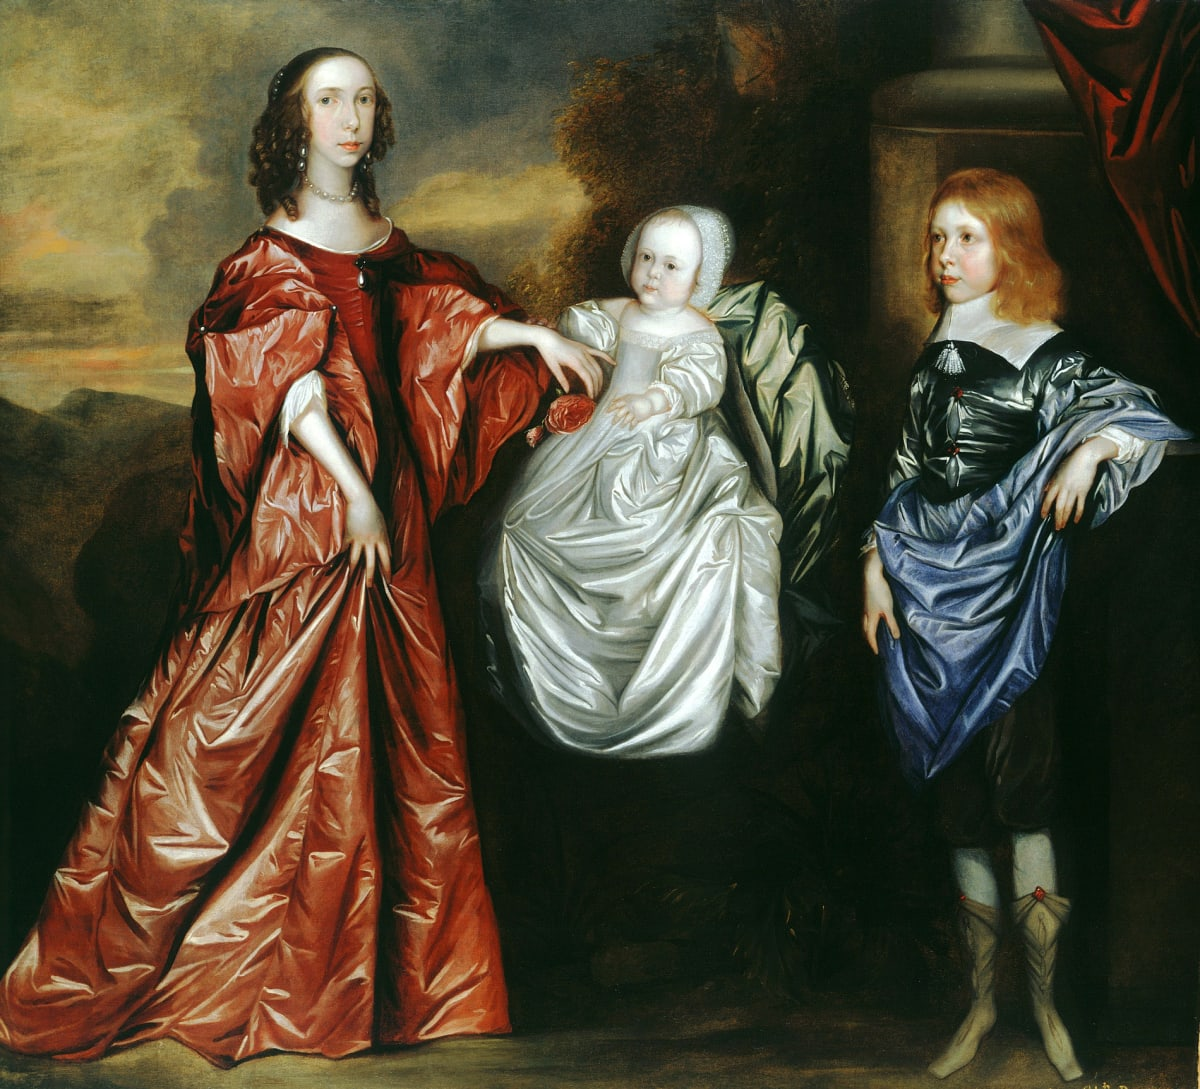 Attributed to Joan Carlile (c.1606 - 1679) Anne (d.1689), Philadelphia (1655 - 1722) and their brother Thomas Wharton (1648 - 1715), later 5th Lord Wharton, c.1656 Oil on canvas 60 1/4 x 66 1/2 in.